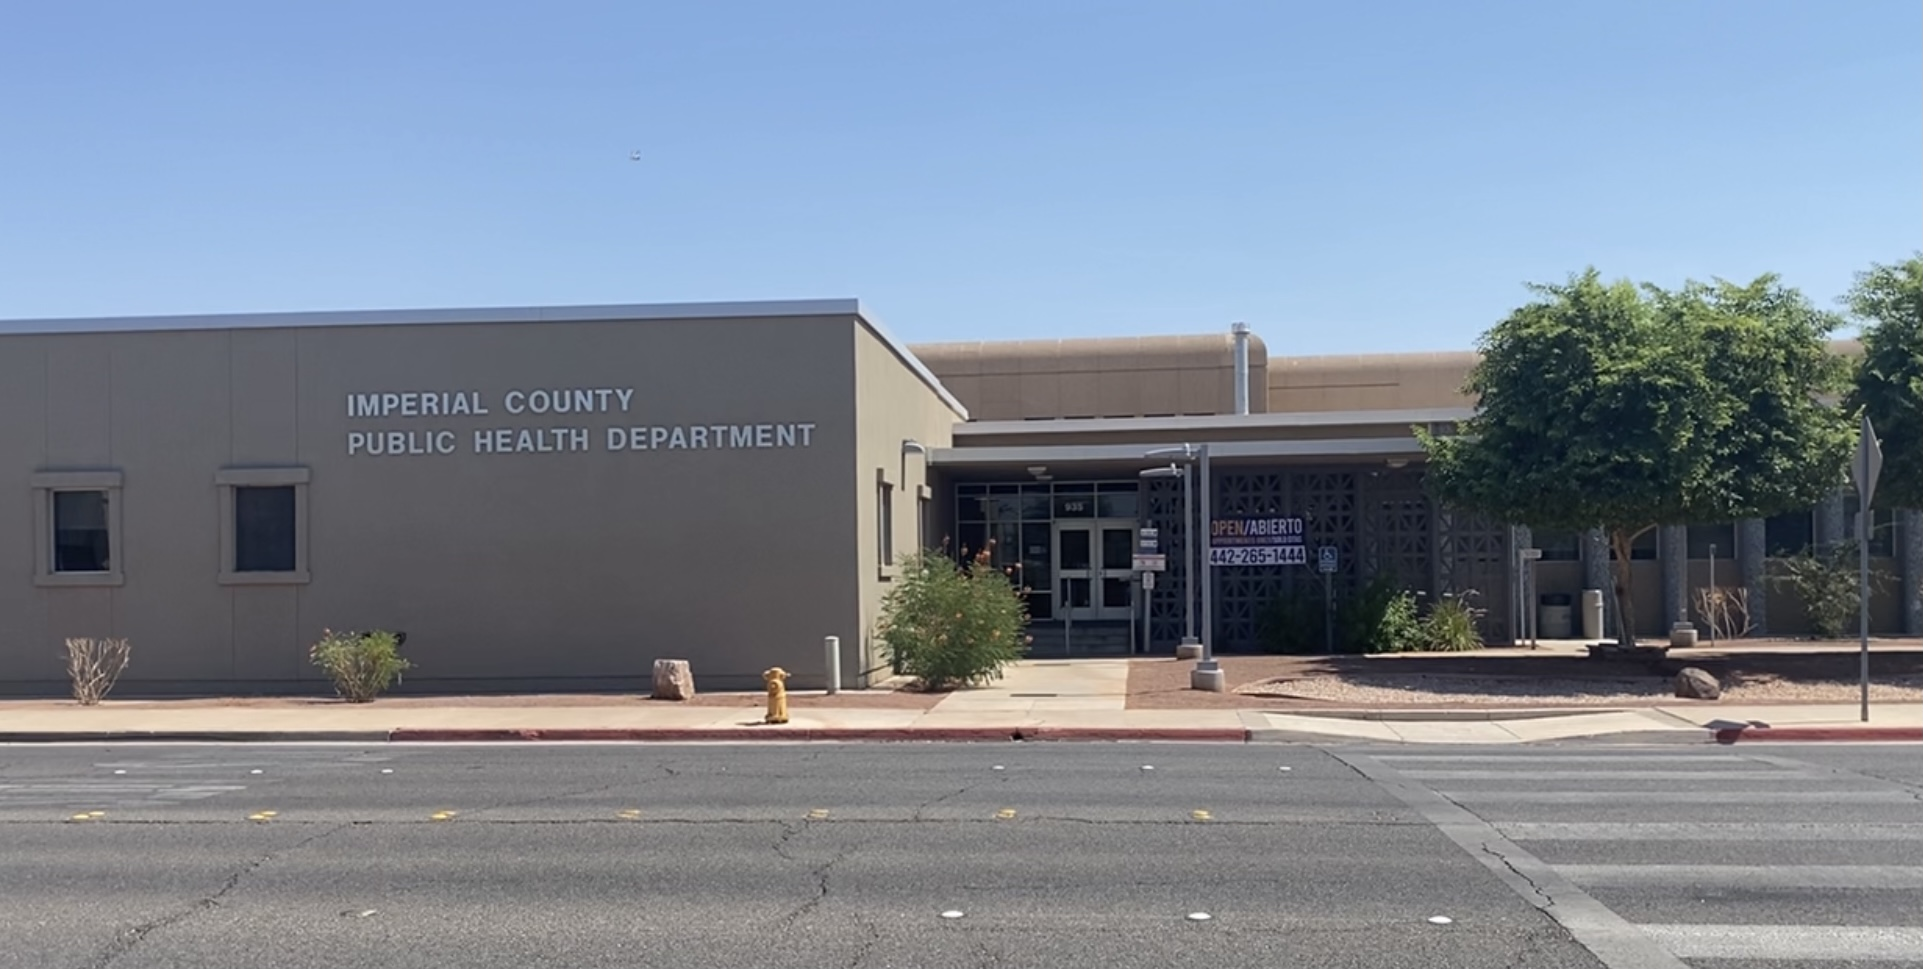 Imperial County Public Health Department